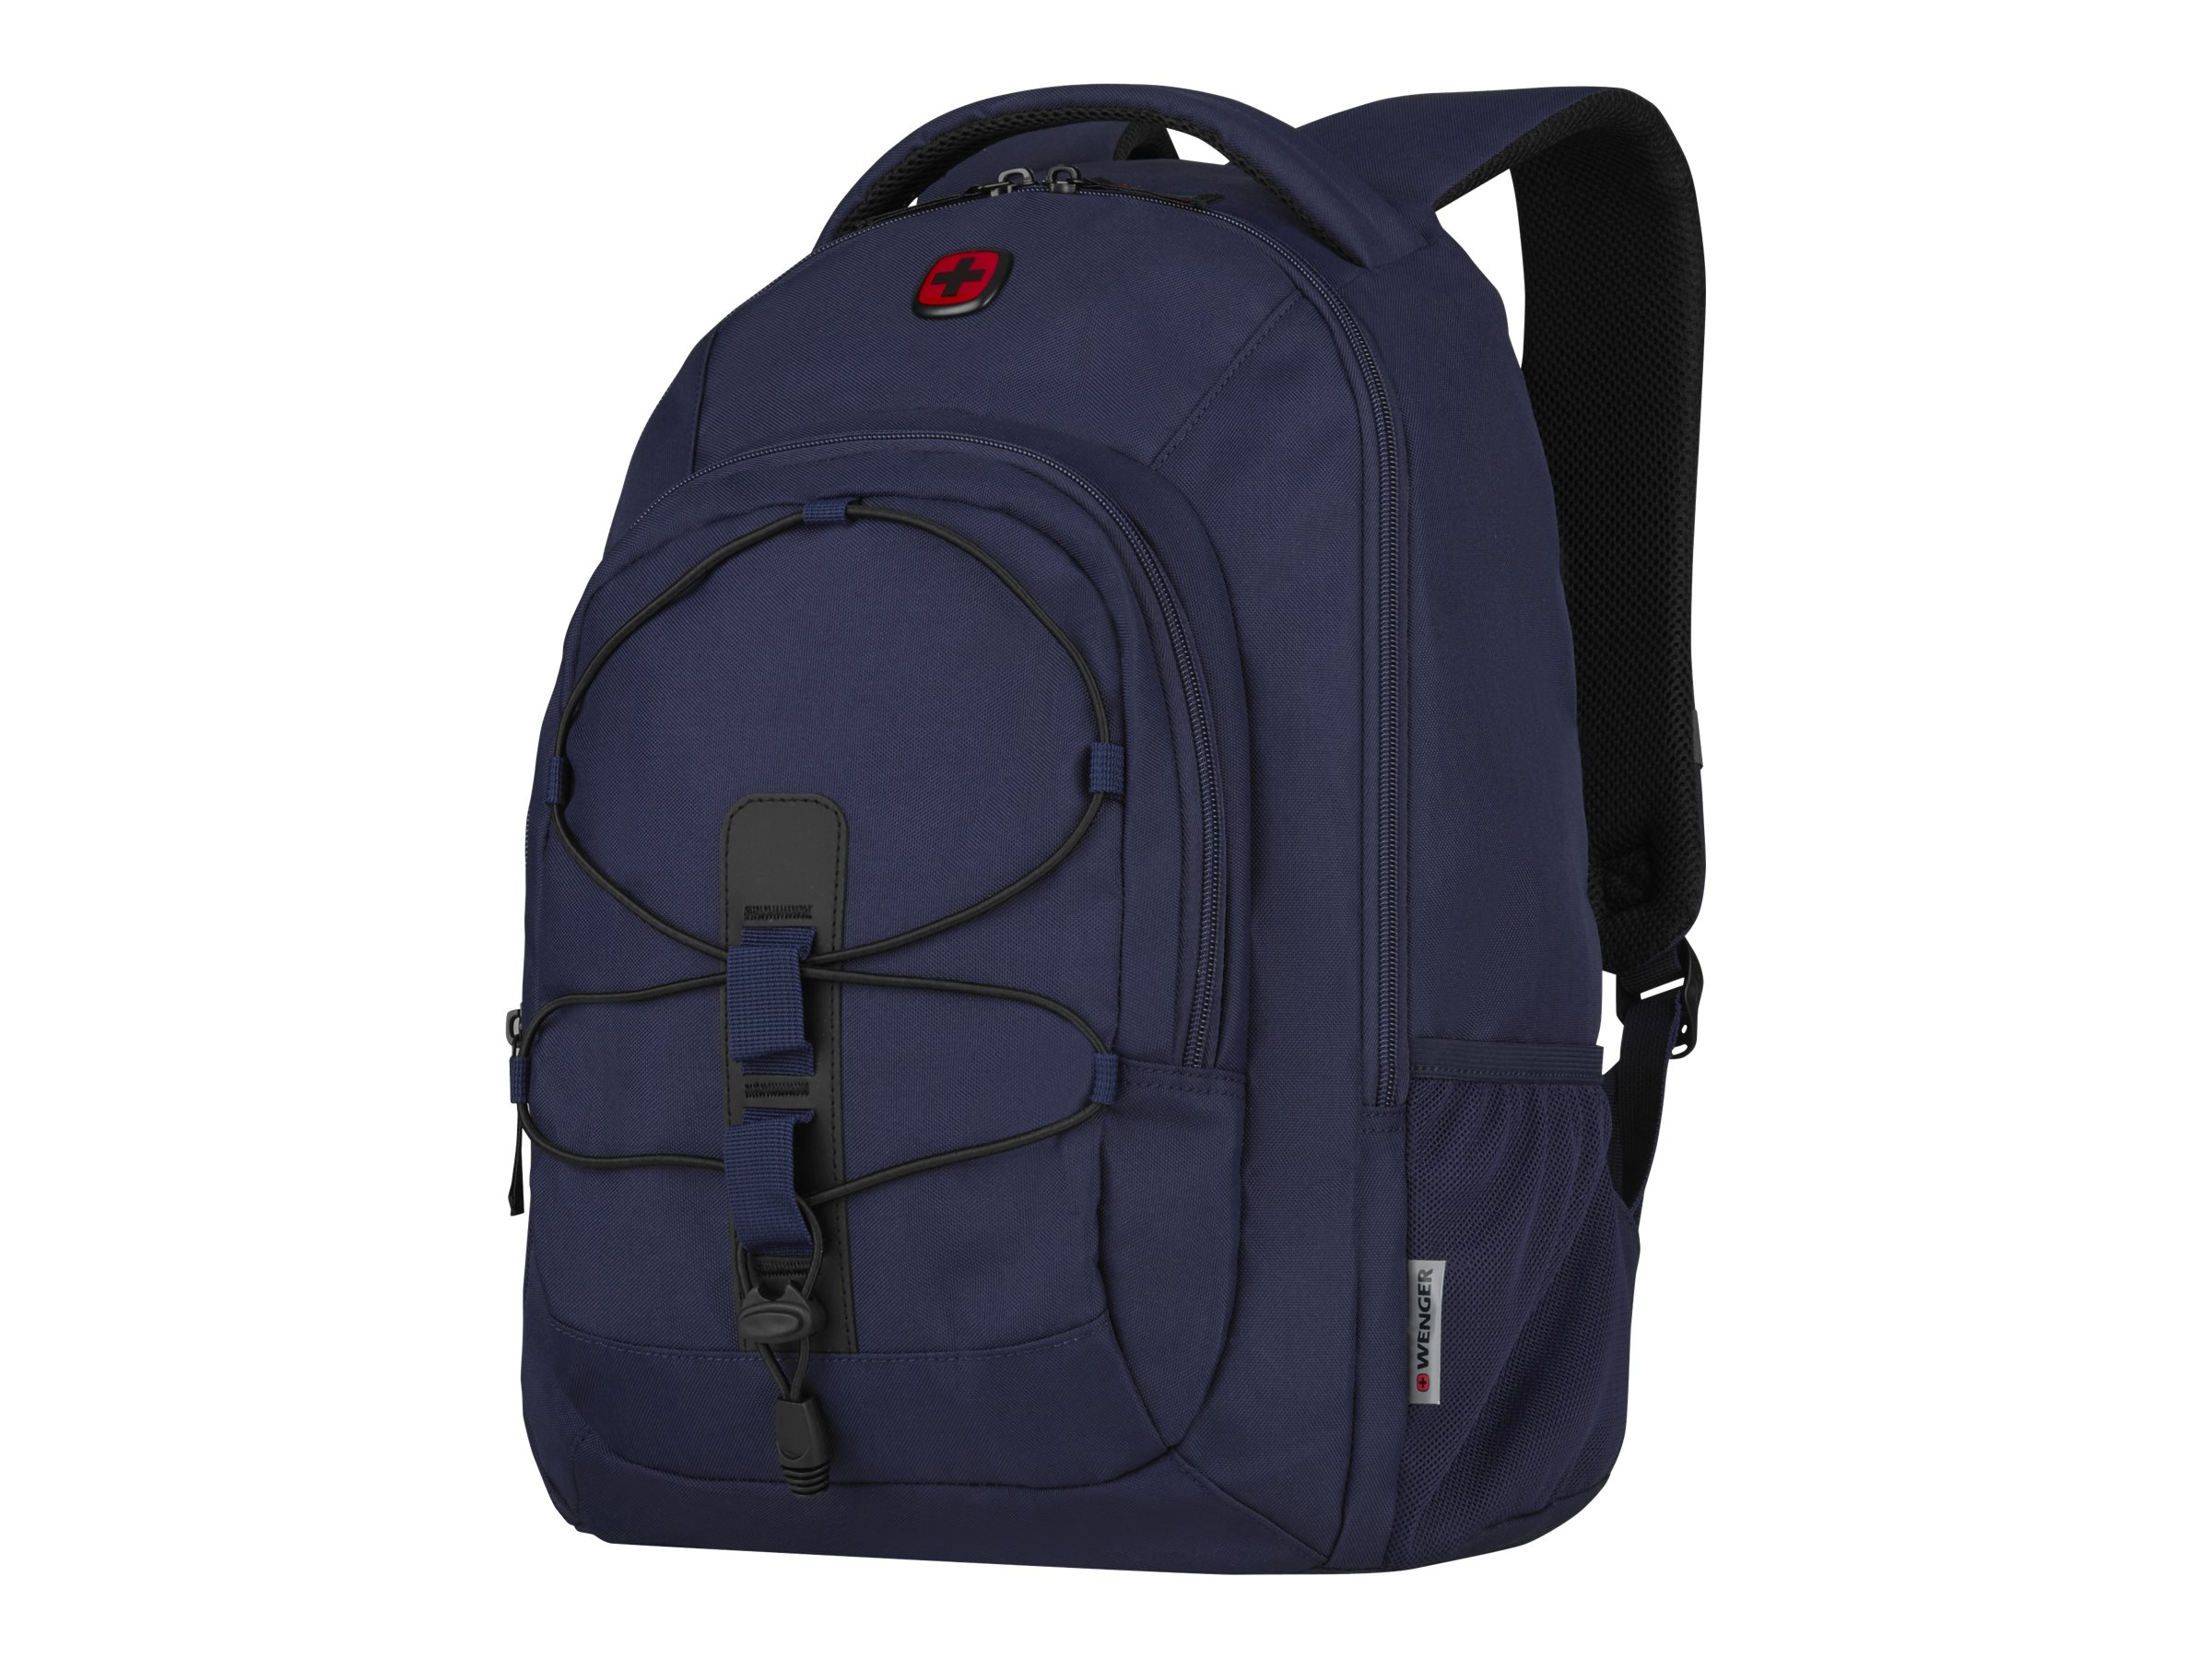 Wenger Mars notebook carrying backpack